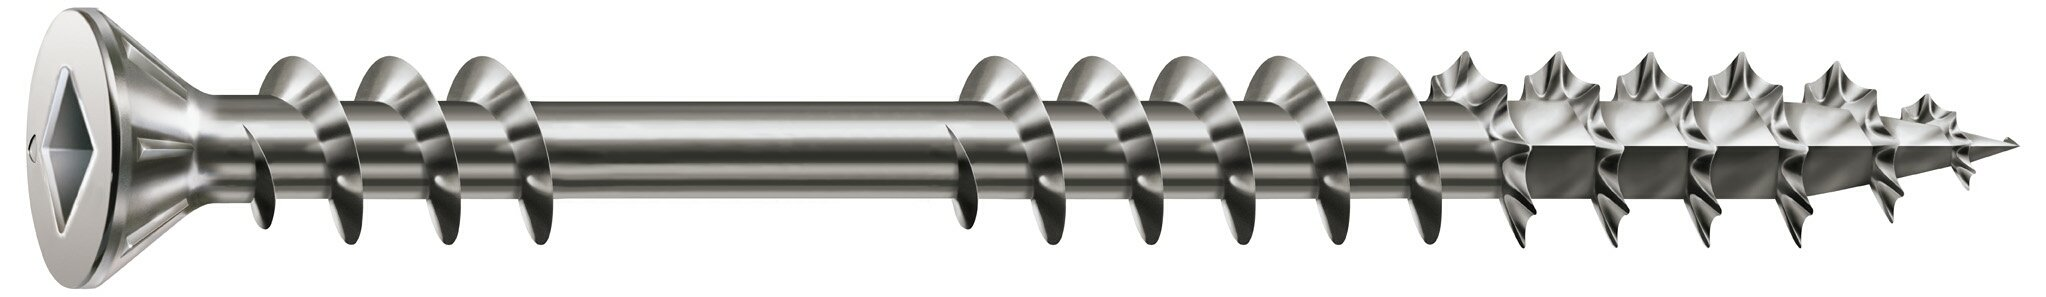 SPAX #10 x 3in. Flat Head Stainless Steel Screw with Double Lock Thread - 1 LB Box